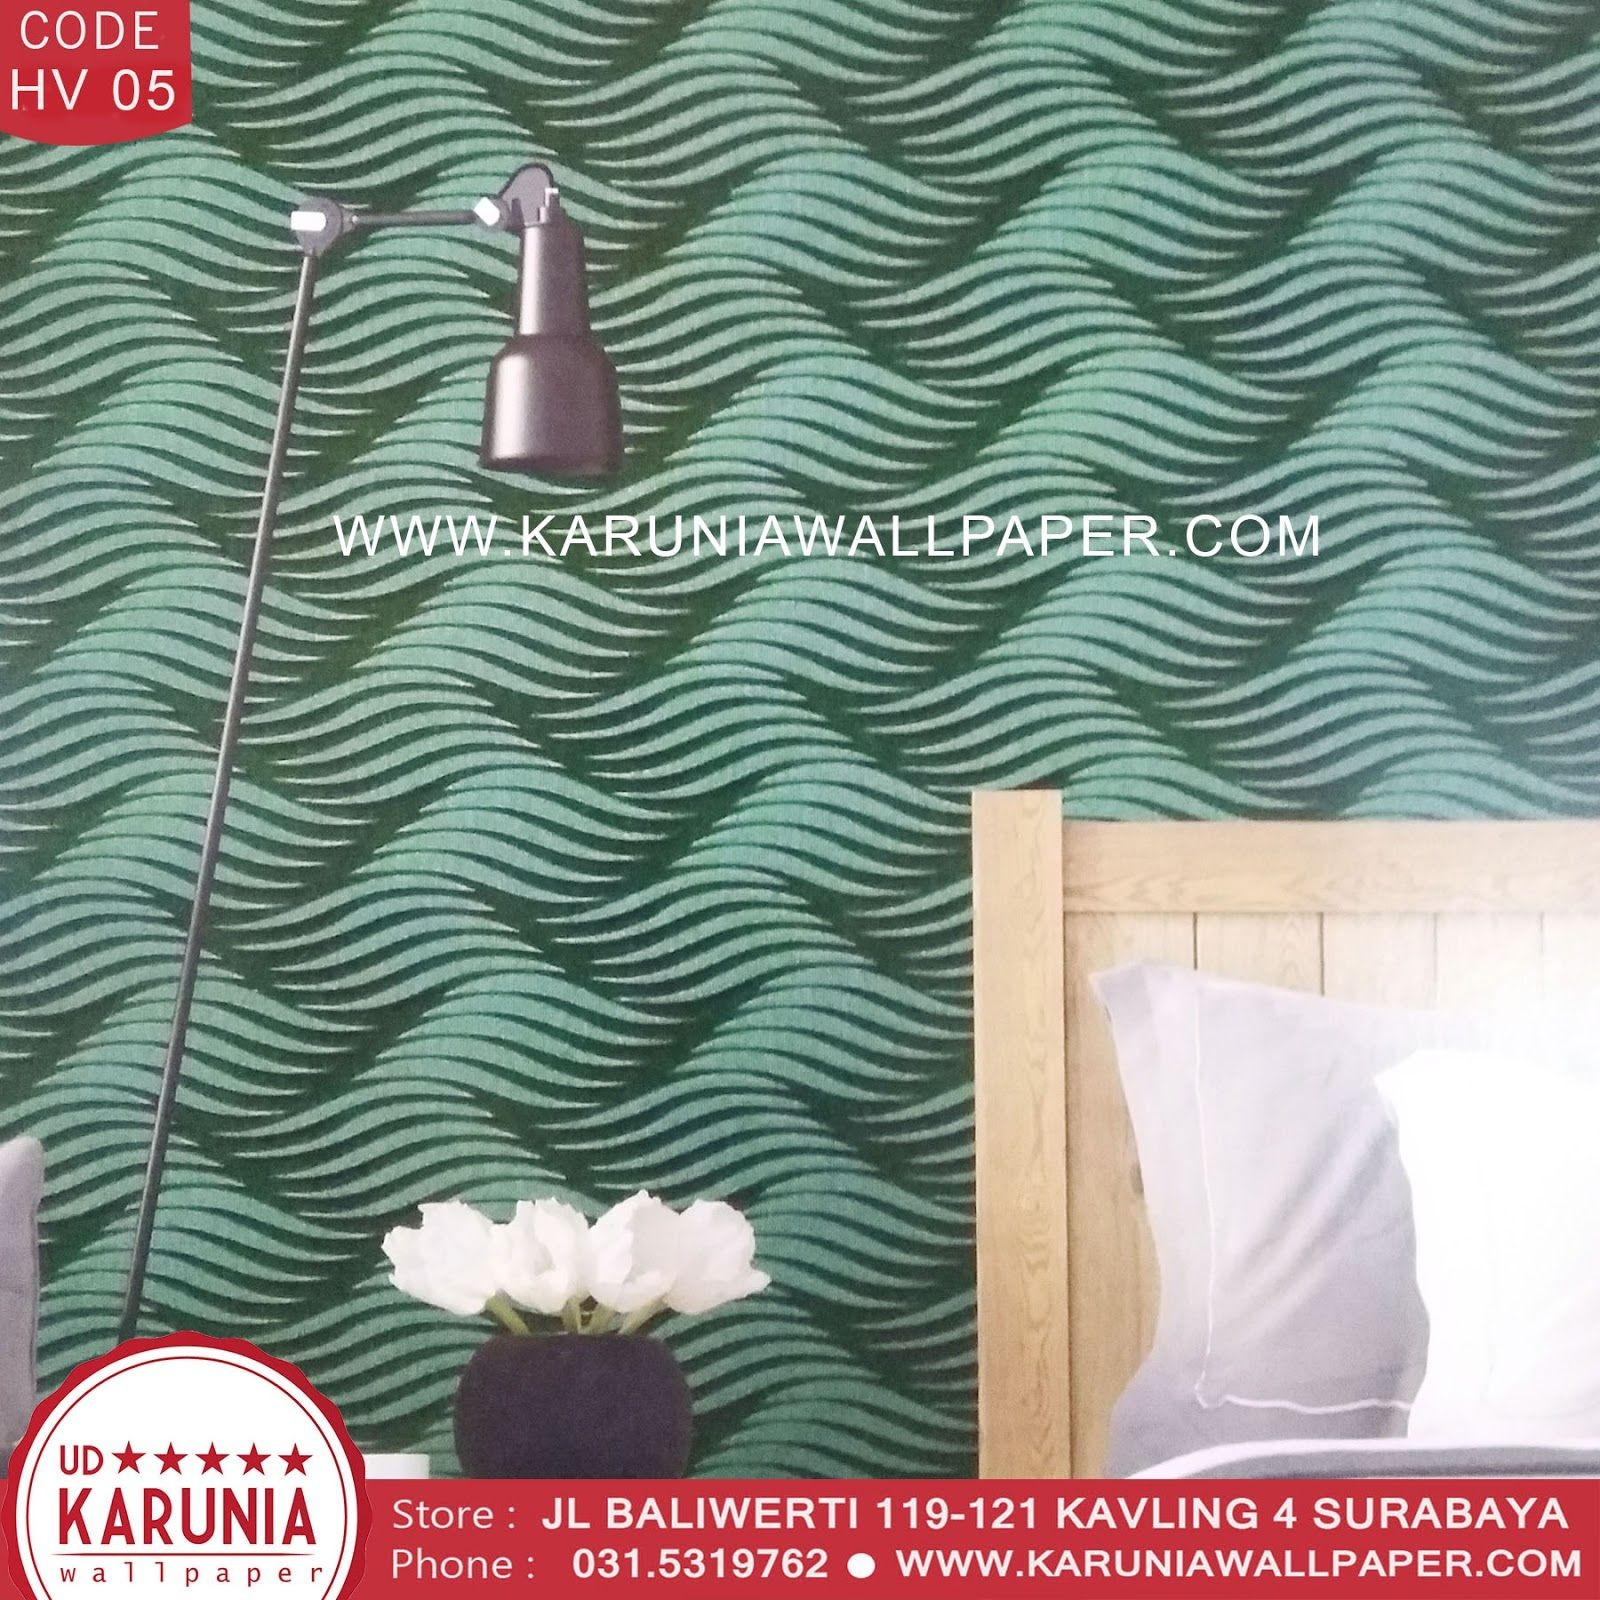 Discover ideas about Wallpaper